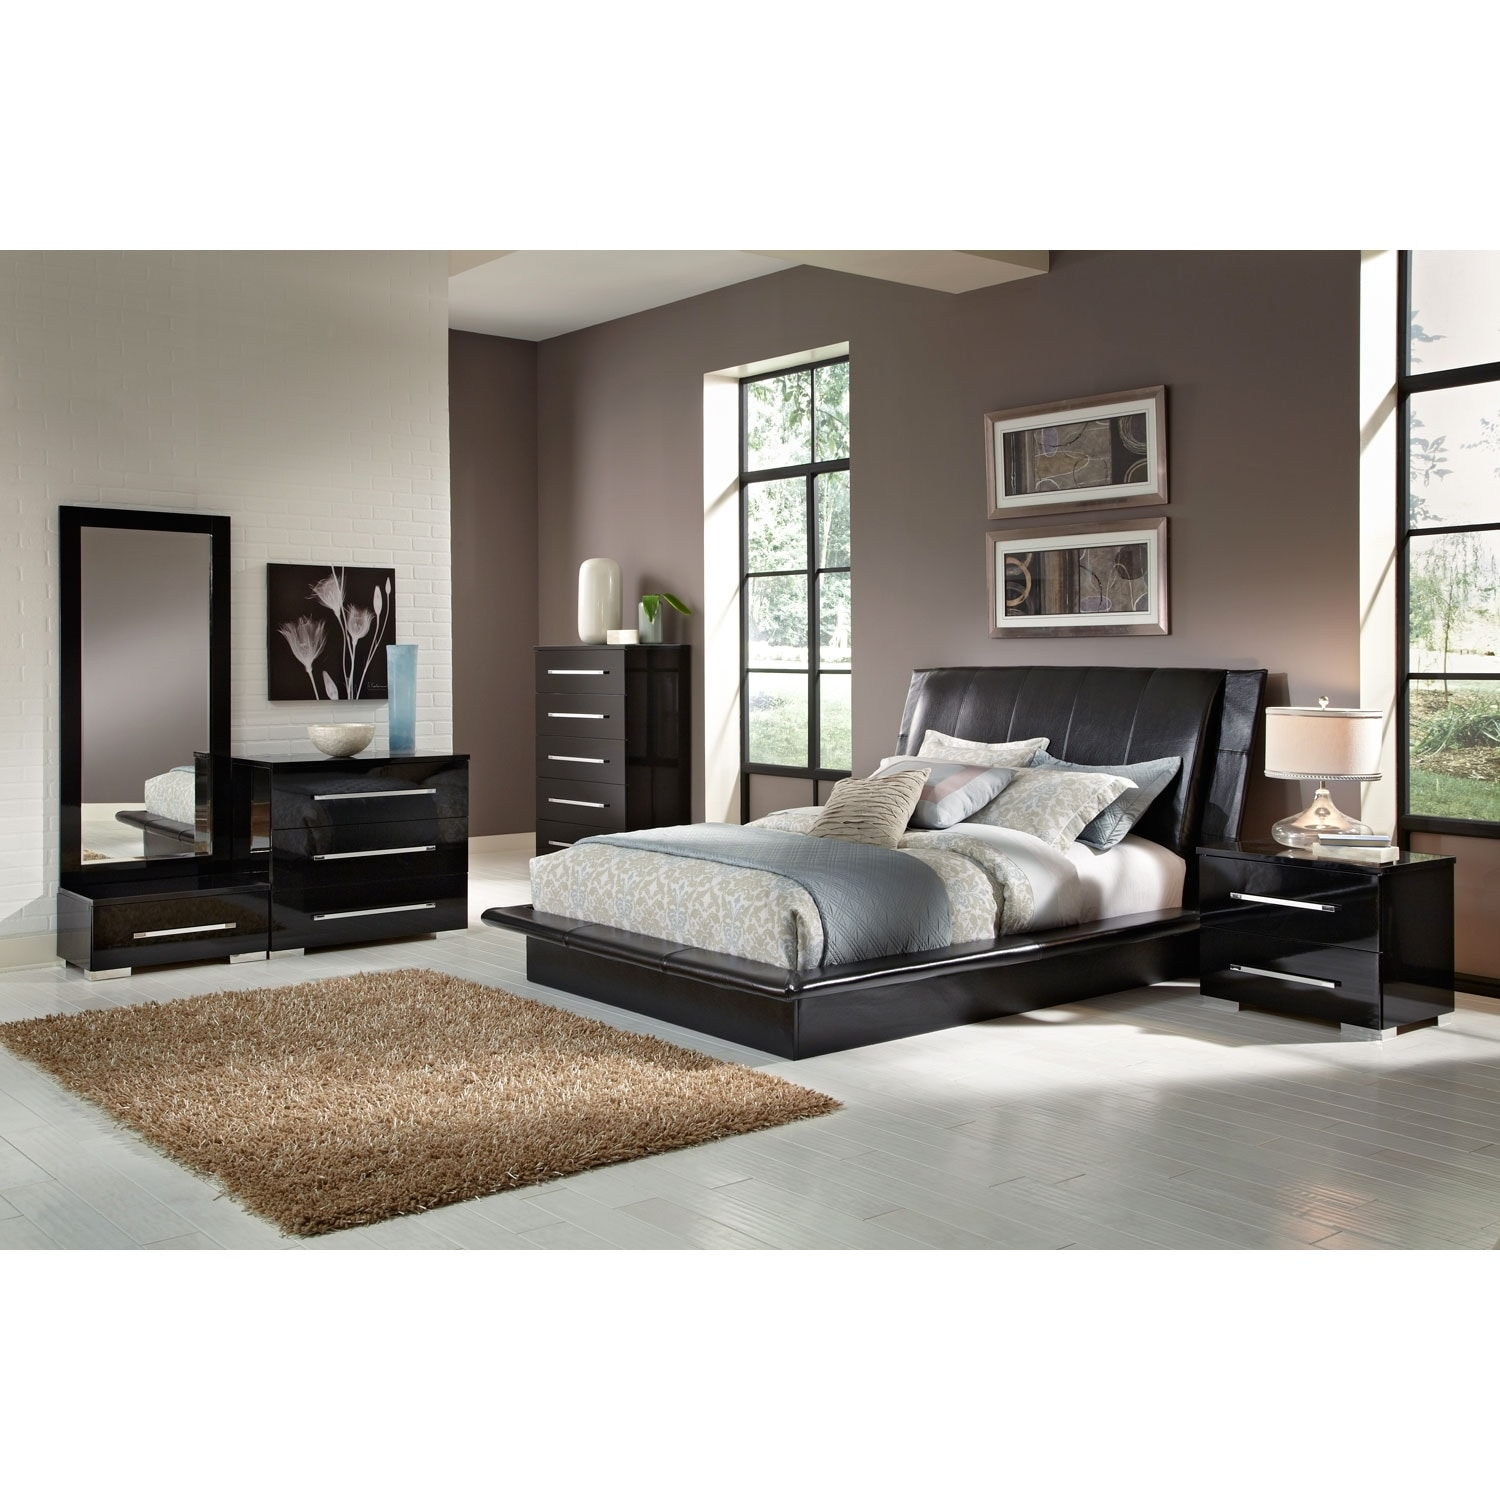 Dimora Black 7 Pc Queen Bedroom Alternate Value City Furniture